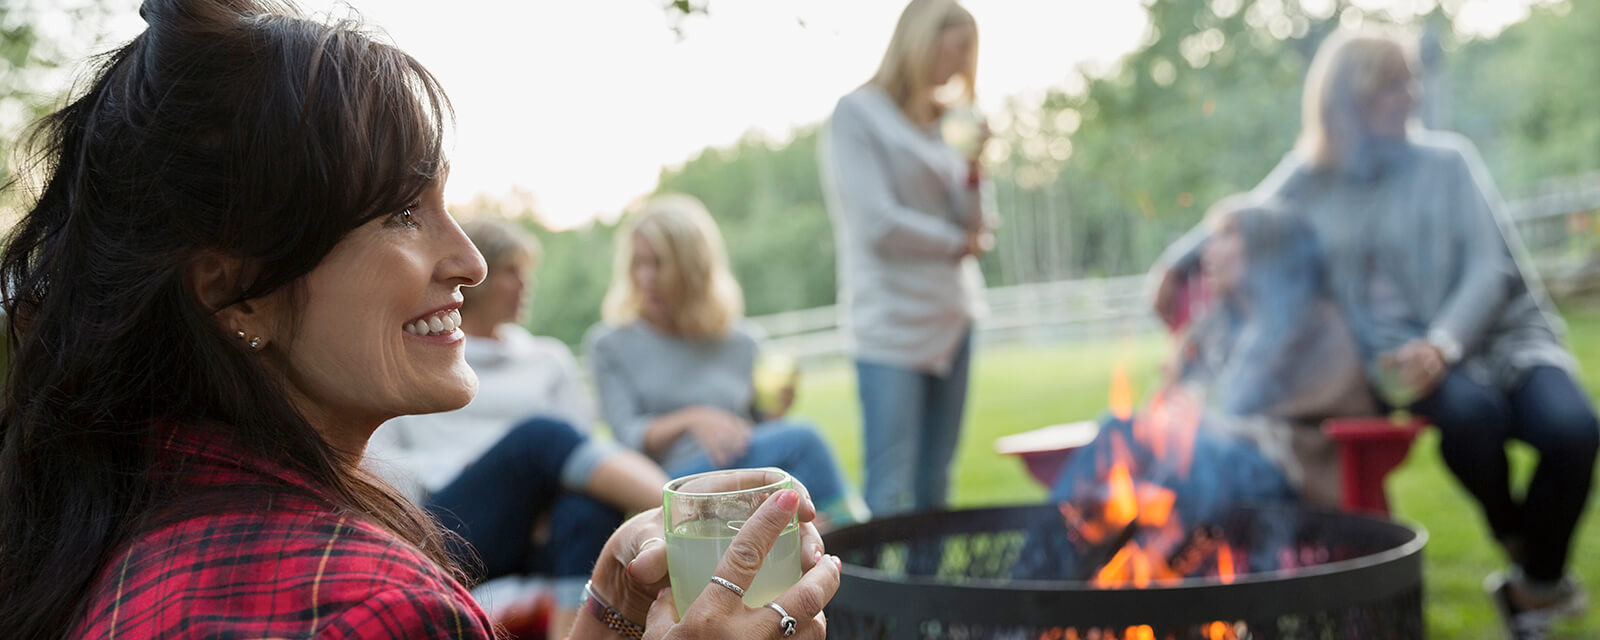 Our active adult 55+ communities throughout Georgia provide the ultimate atmosphere for gathering with neighbors to relax, enjoy some wine or even a barbeque.